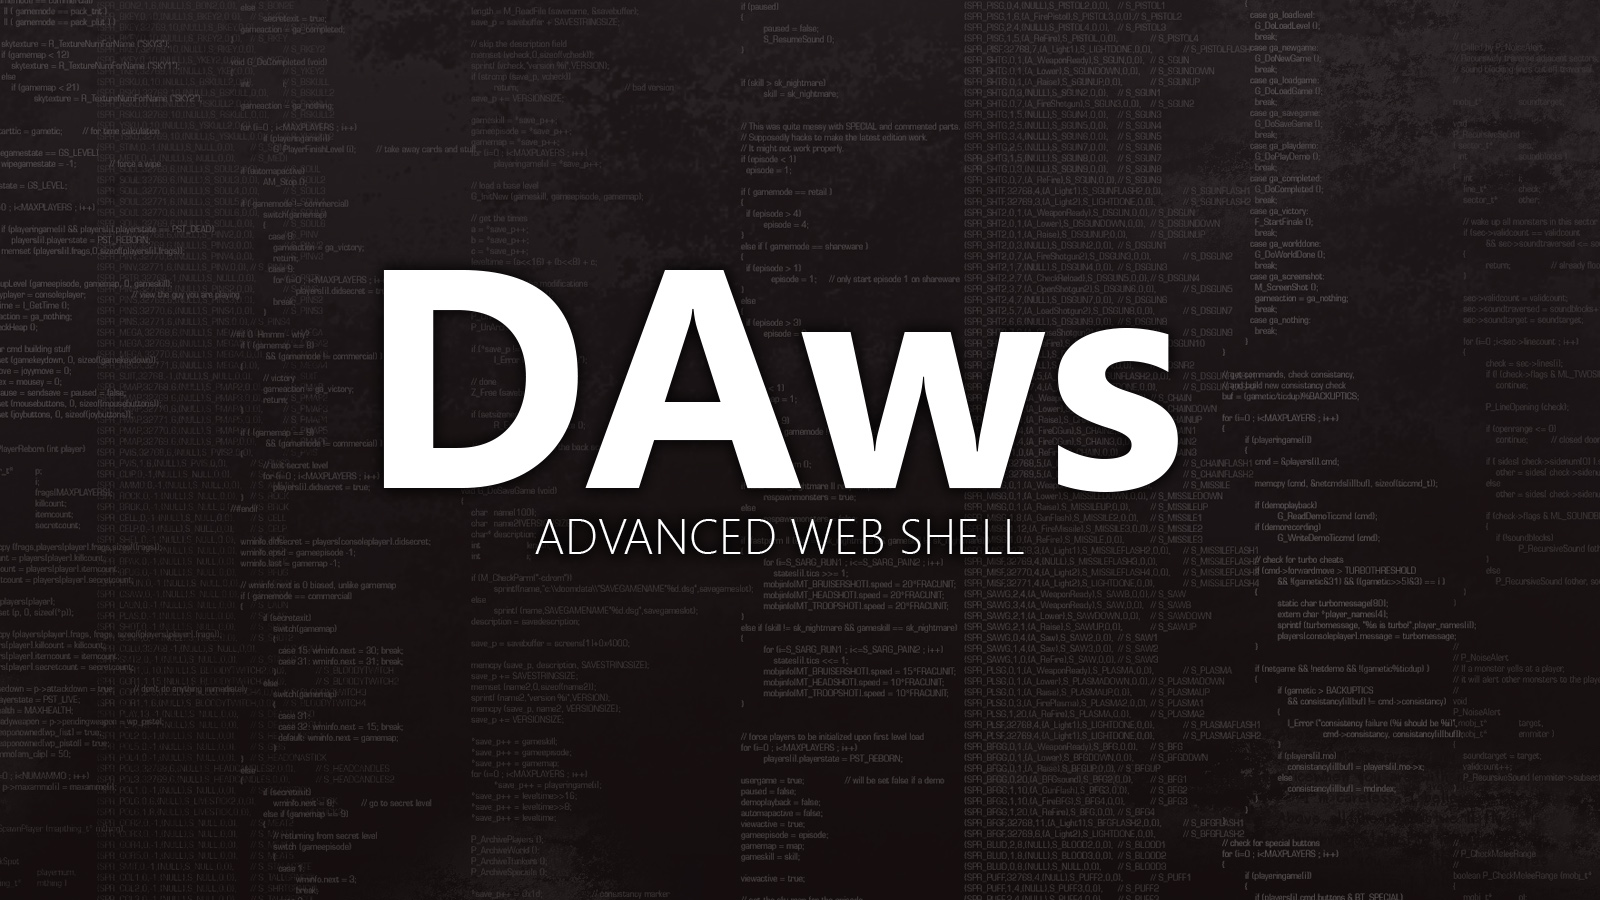 DAws - Advanced Web Shell